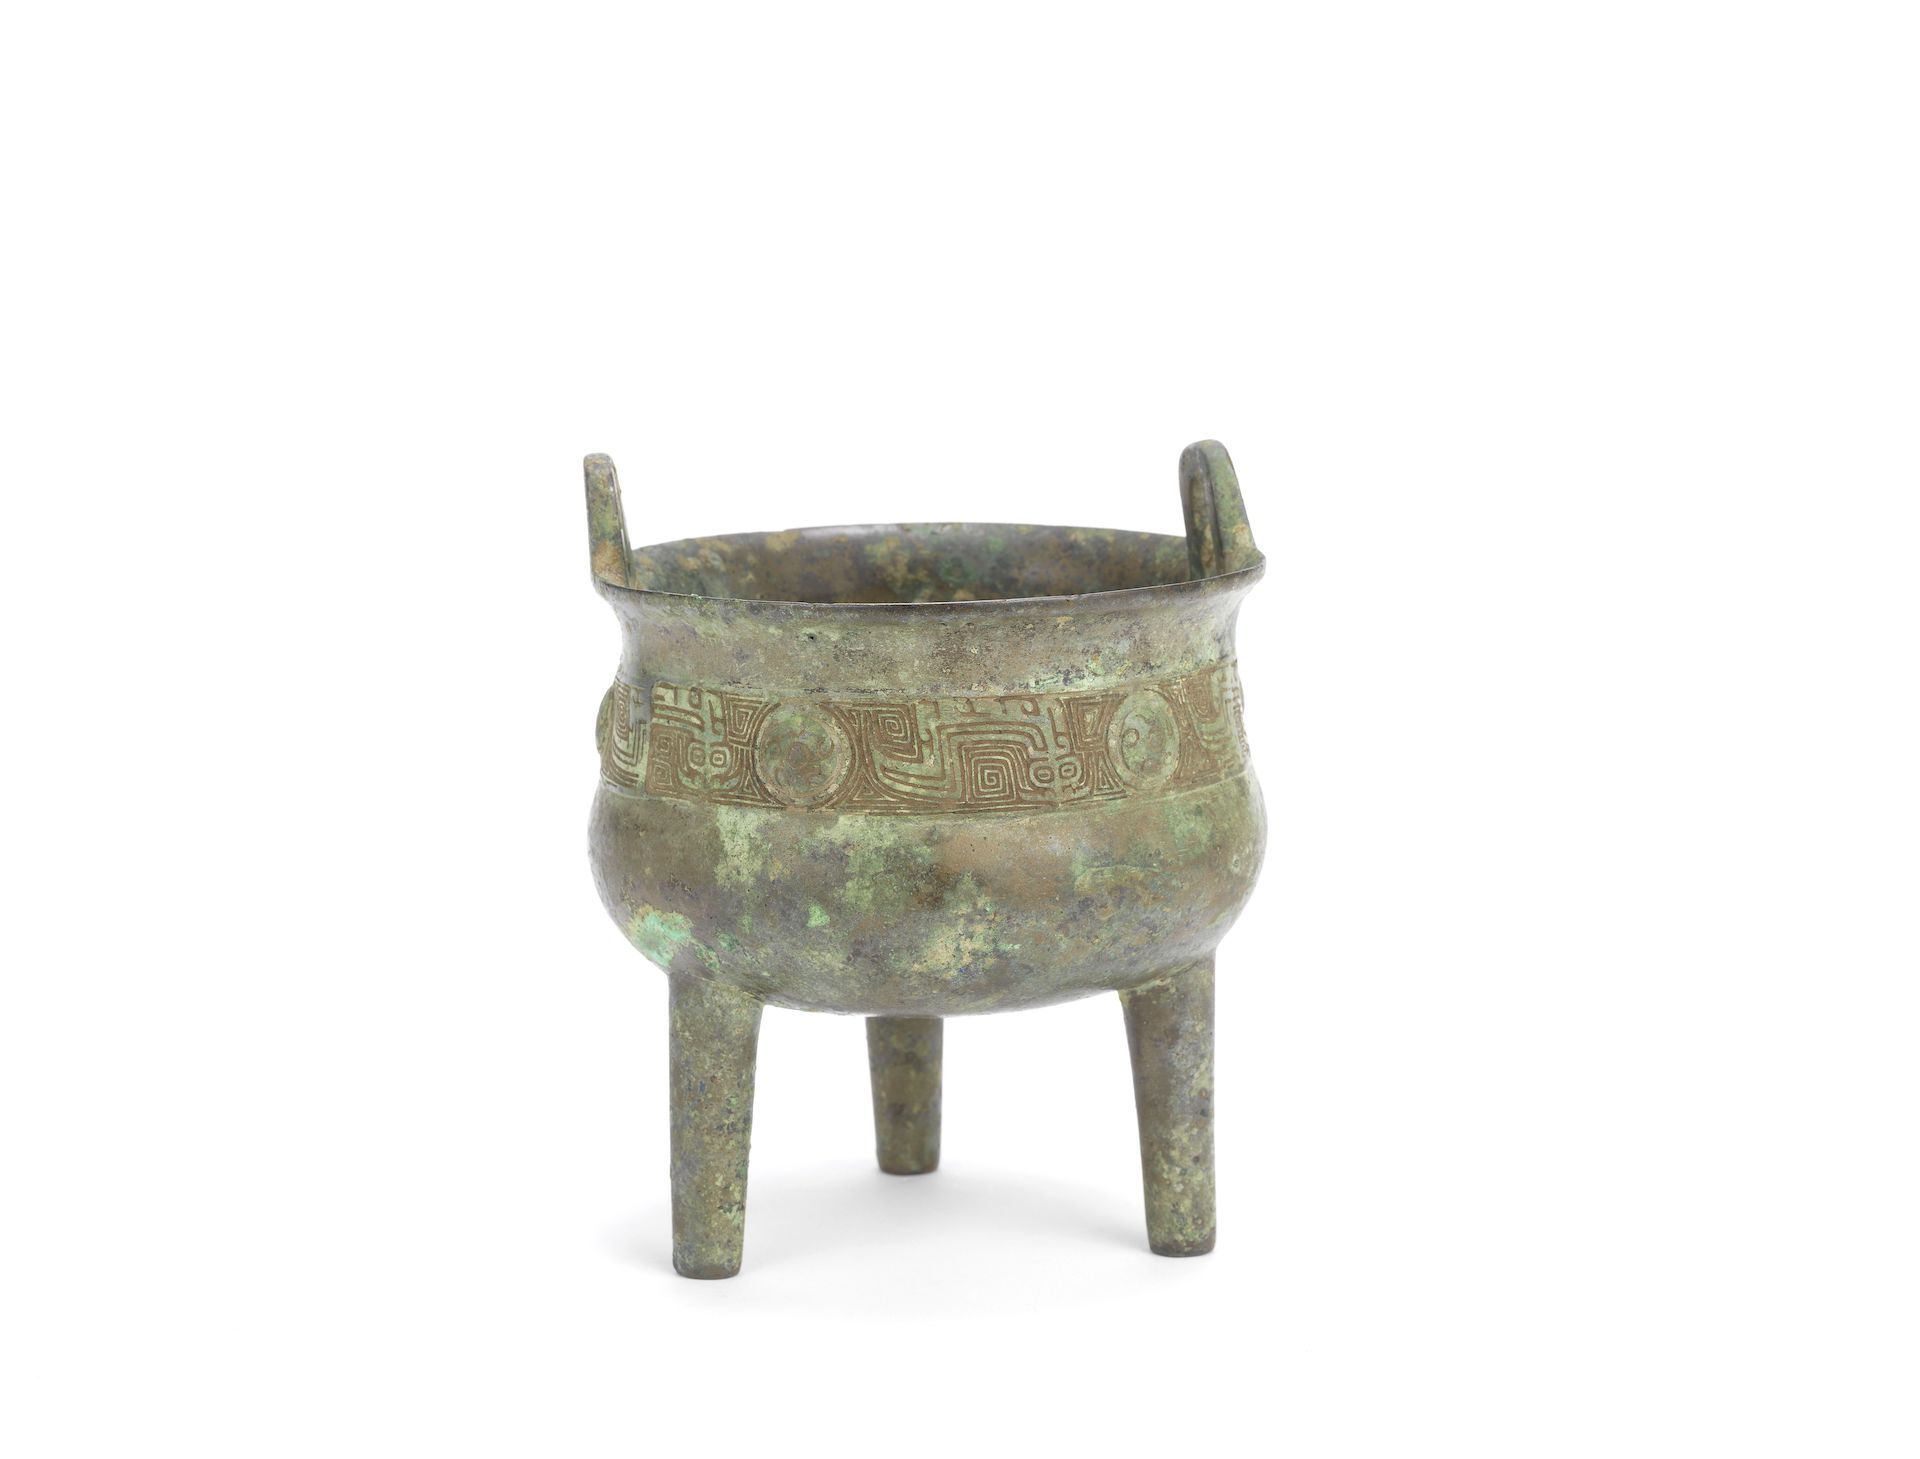 An archaic bronze ritual tripod vessel, ding, Shang/Western Zhou Dynasty. The globular body with upright loop handles, supported by three slender, tubular legs, with incised stylised dragon band and raised bosses below the flaring rim, fitted wood stand, the interior with four small moulded marks, the patina of a mottled greyish-green hue. 16.5cm (6 1/5in) high (3). £3,000-5,000